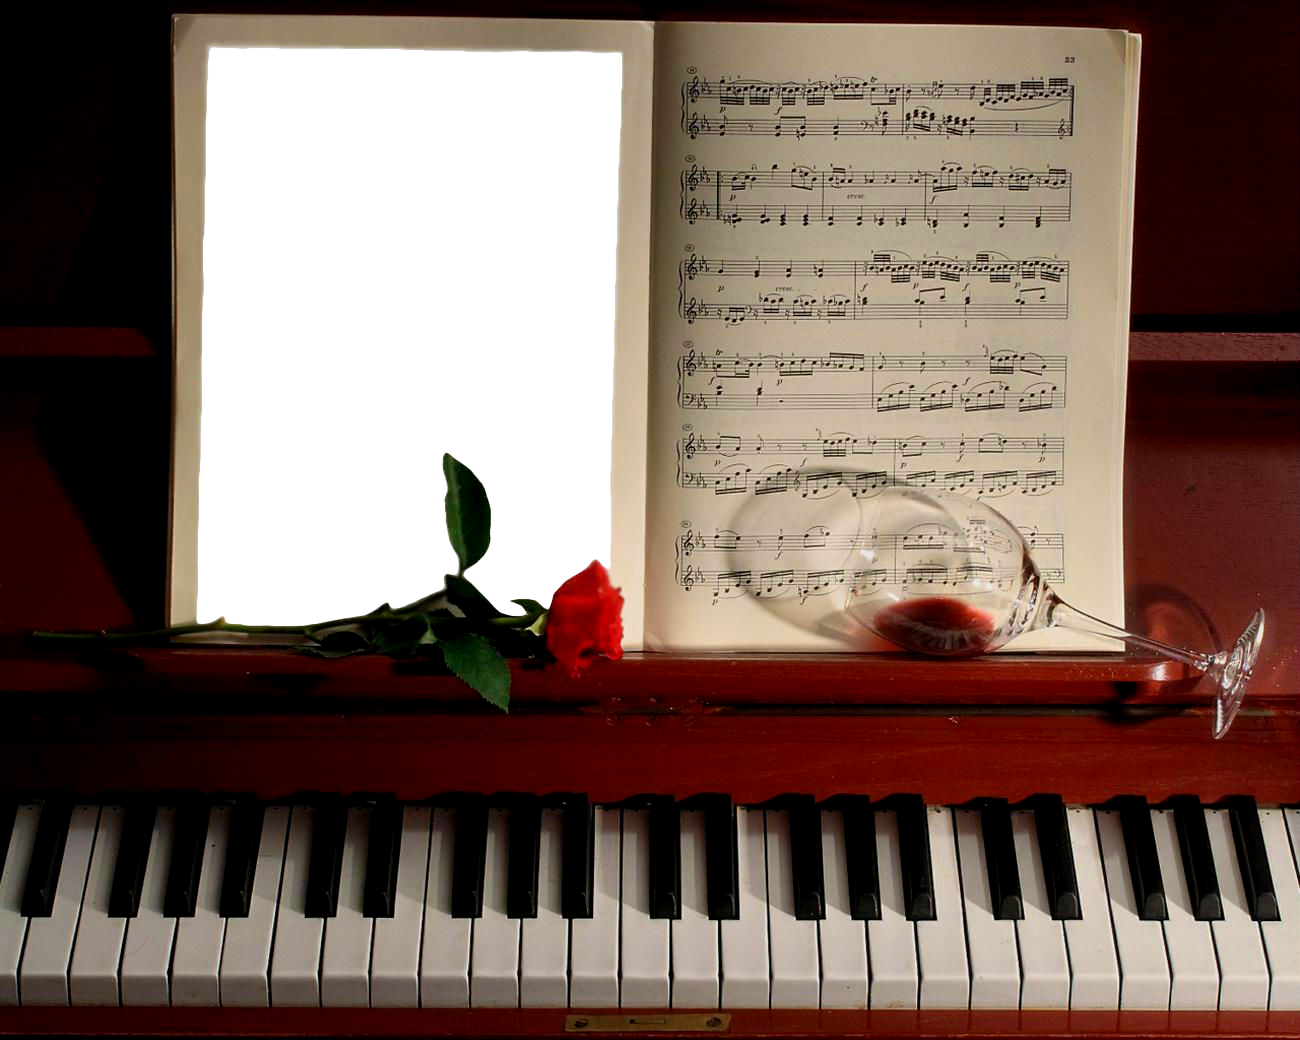 Photo Frame With Piano Gallery Yopriceville High Quality Images And Transparent Png Free Clipart Collage Online Photo Frame Frame